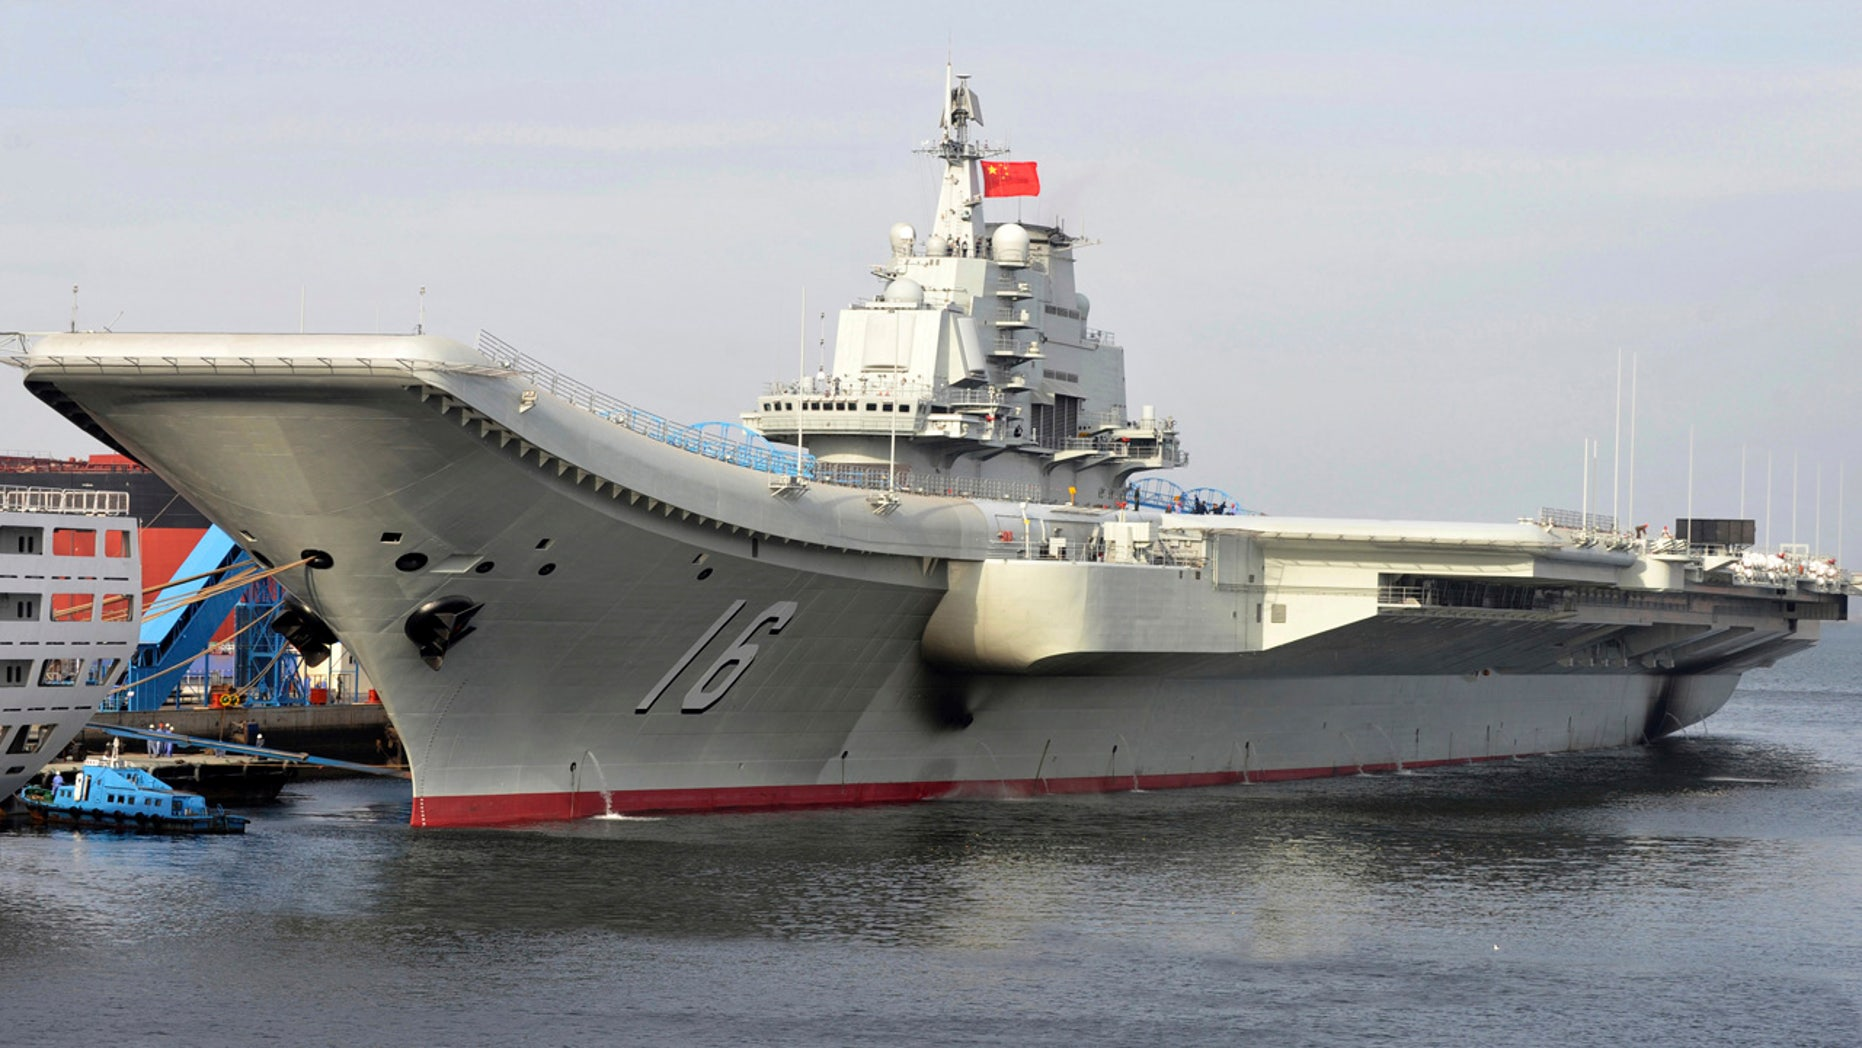 FILE - In this undated file photo released by China's Xinhua News Agency, China's aircraft carrier Liaoning berths in a port of China.